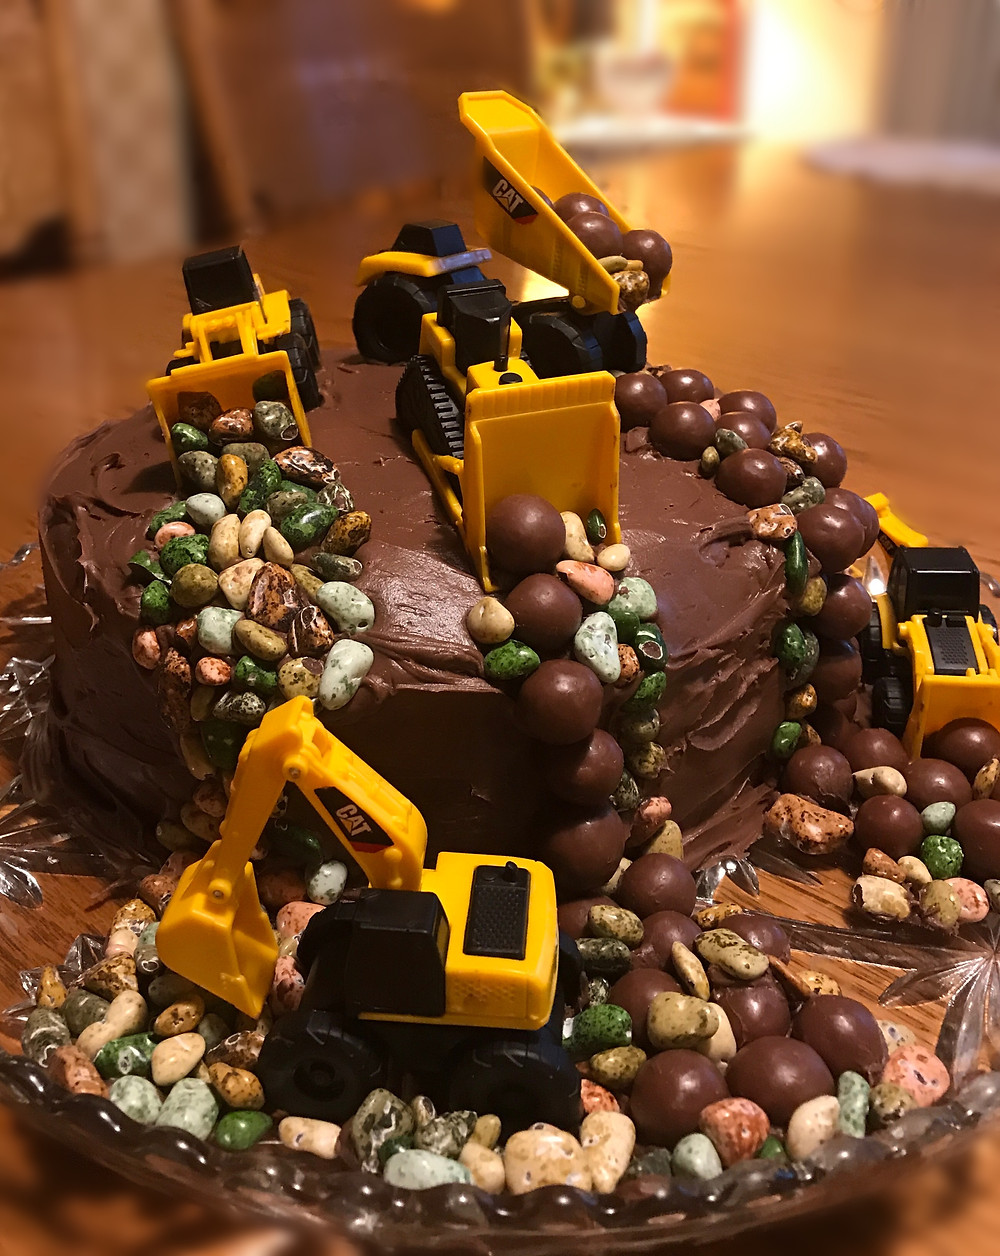 Close-up of cake on table / Make a Construction Site Cake! / www.HoneycombOasis.com